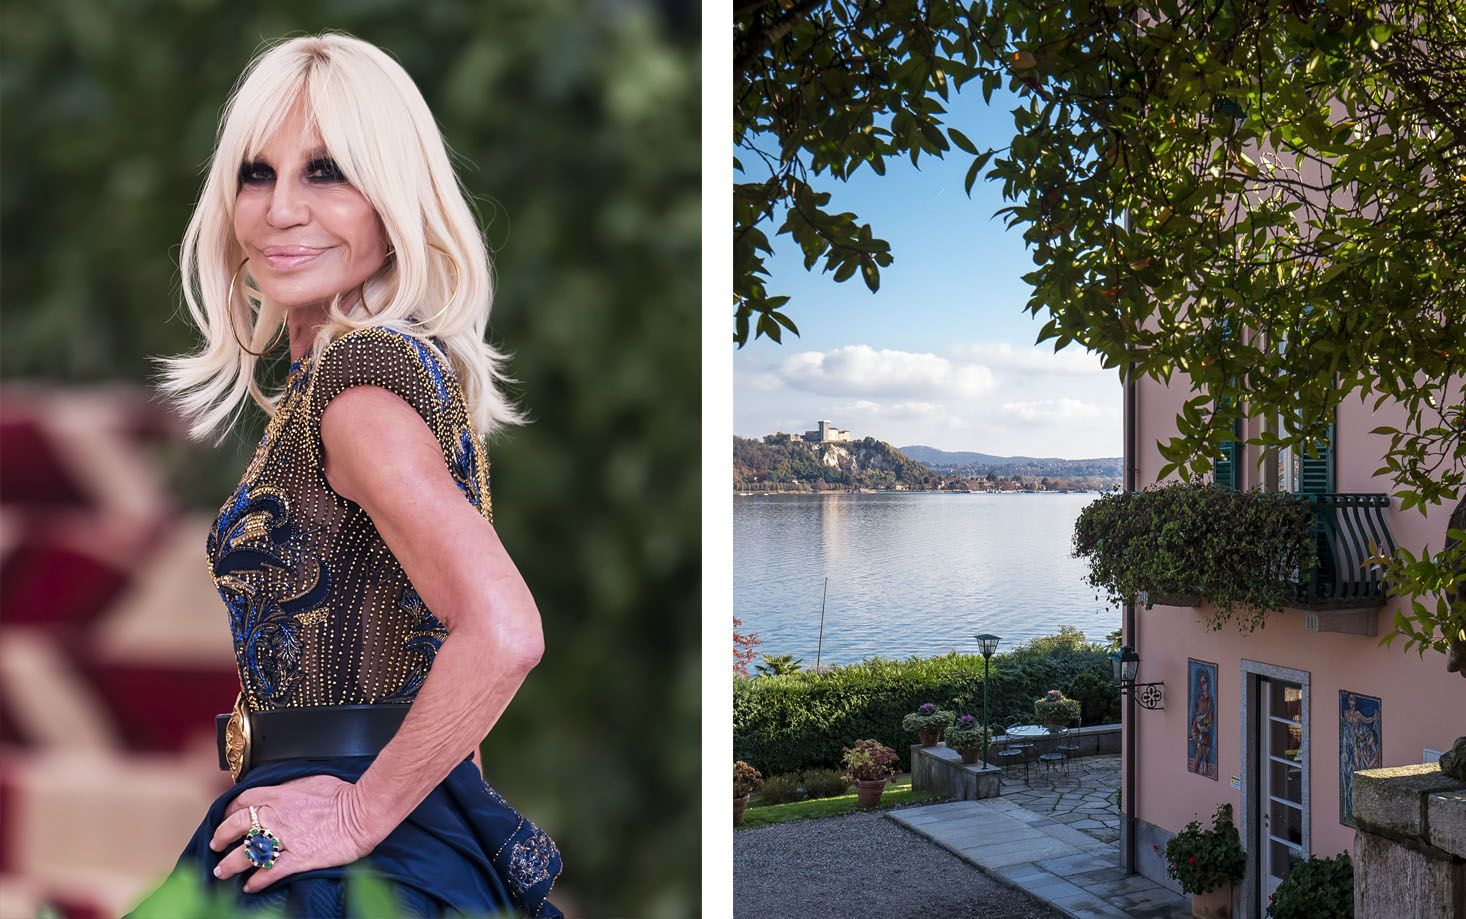 Donatella Versace Just Purchased an Italian Lakefront House for $5.6 Million